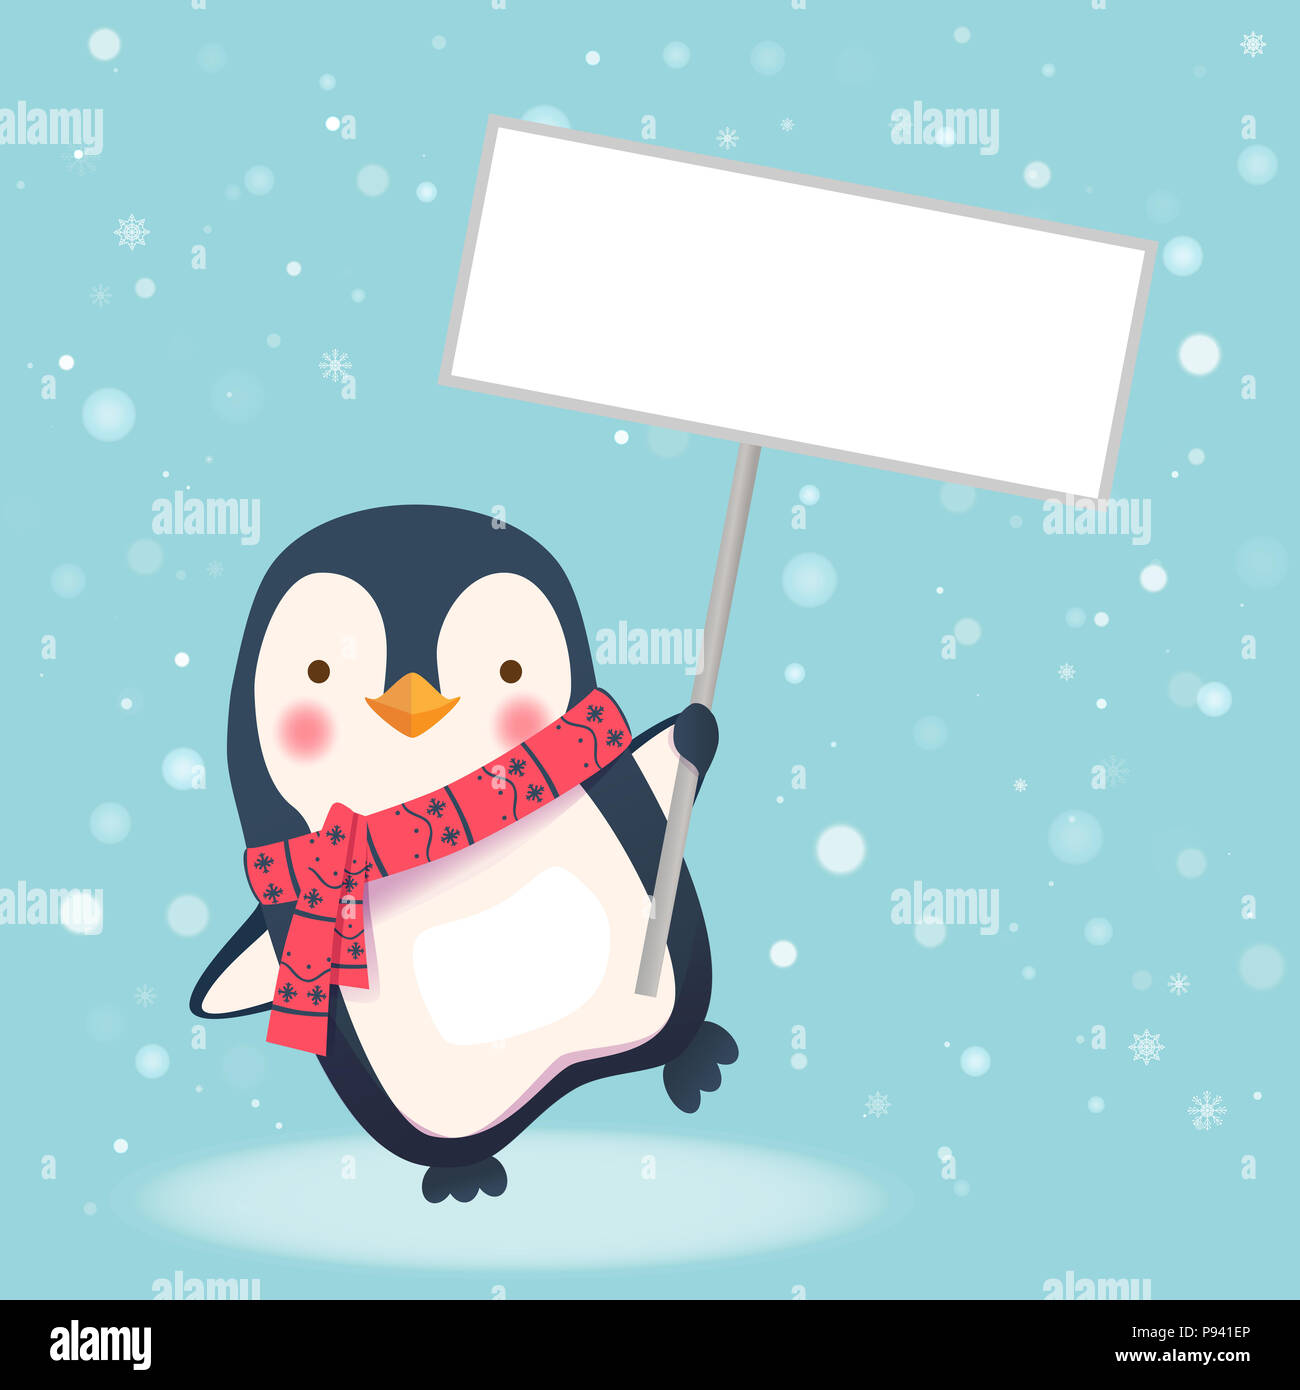 Cute Penguin With Scarf Holding Blank Sign Penguin Cartoon Illustration Stock Photo Alamy